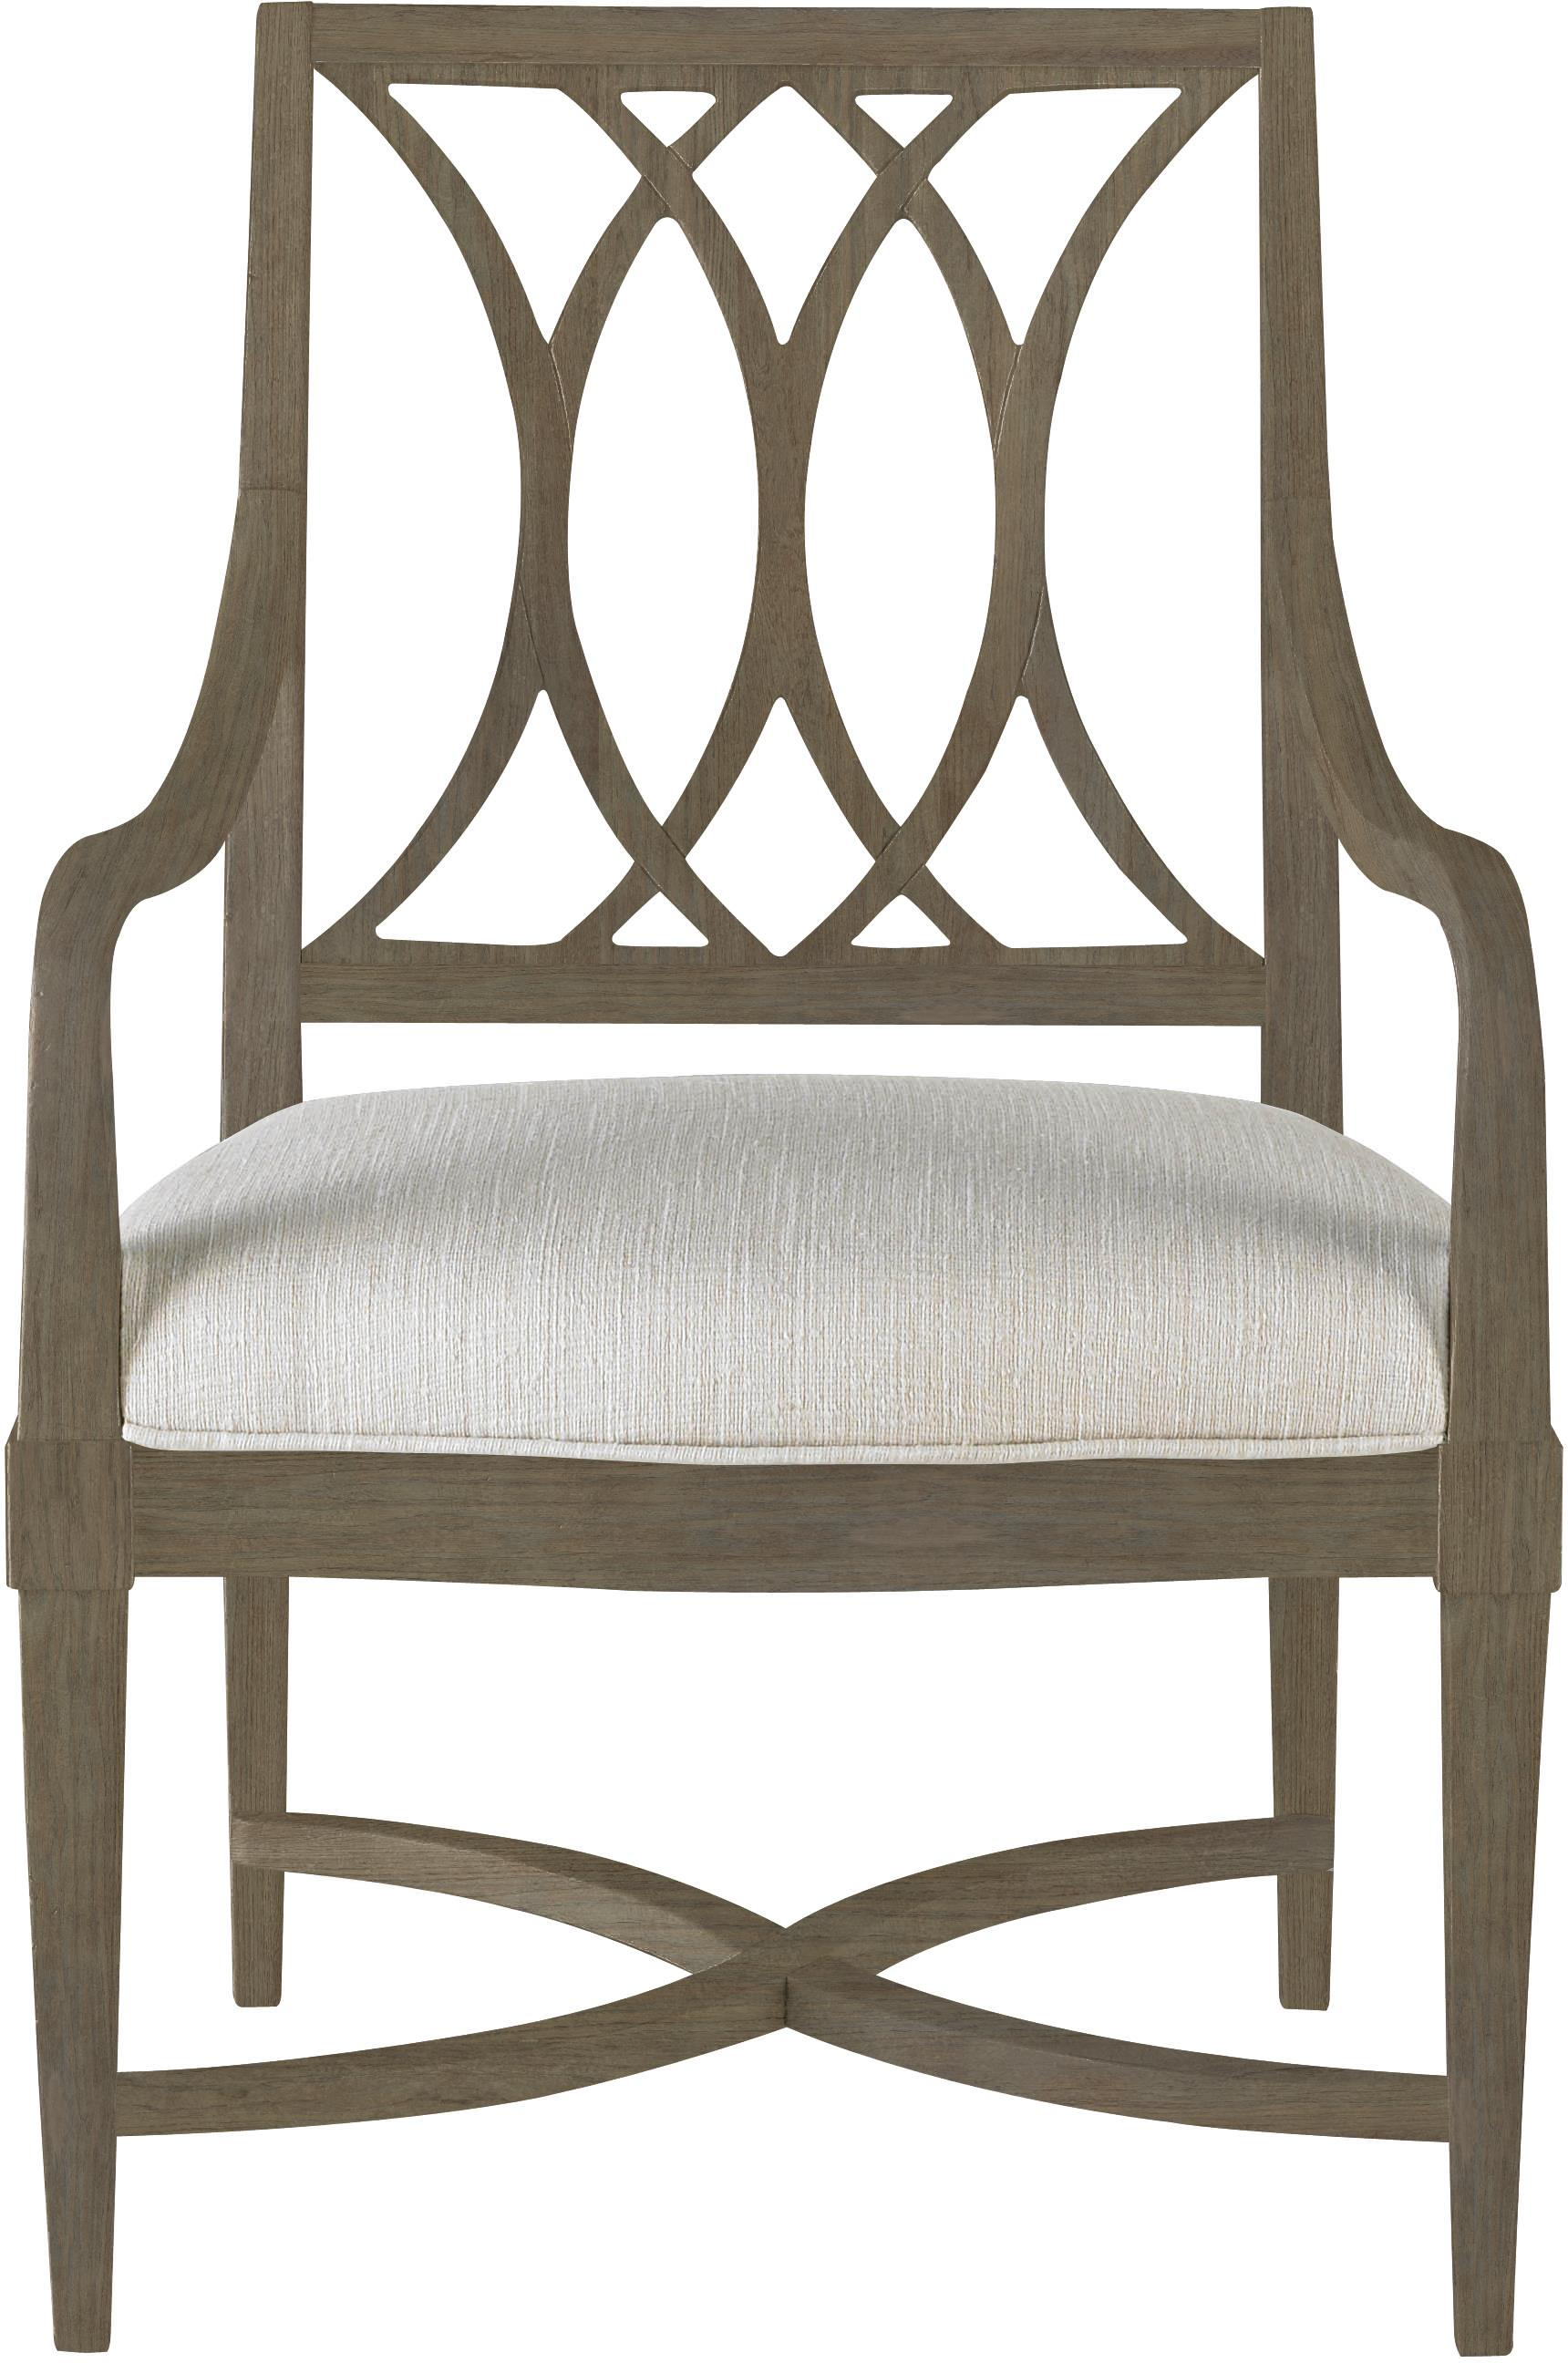 Stanley Furniture Coastal Living Resort Heritage Coast Arm Chair - Item Number: 062-31-70